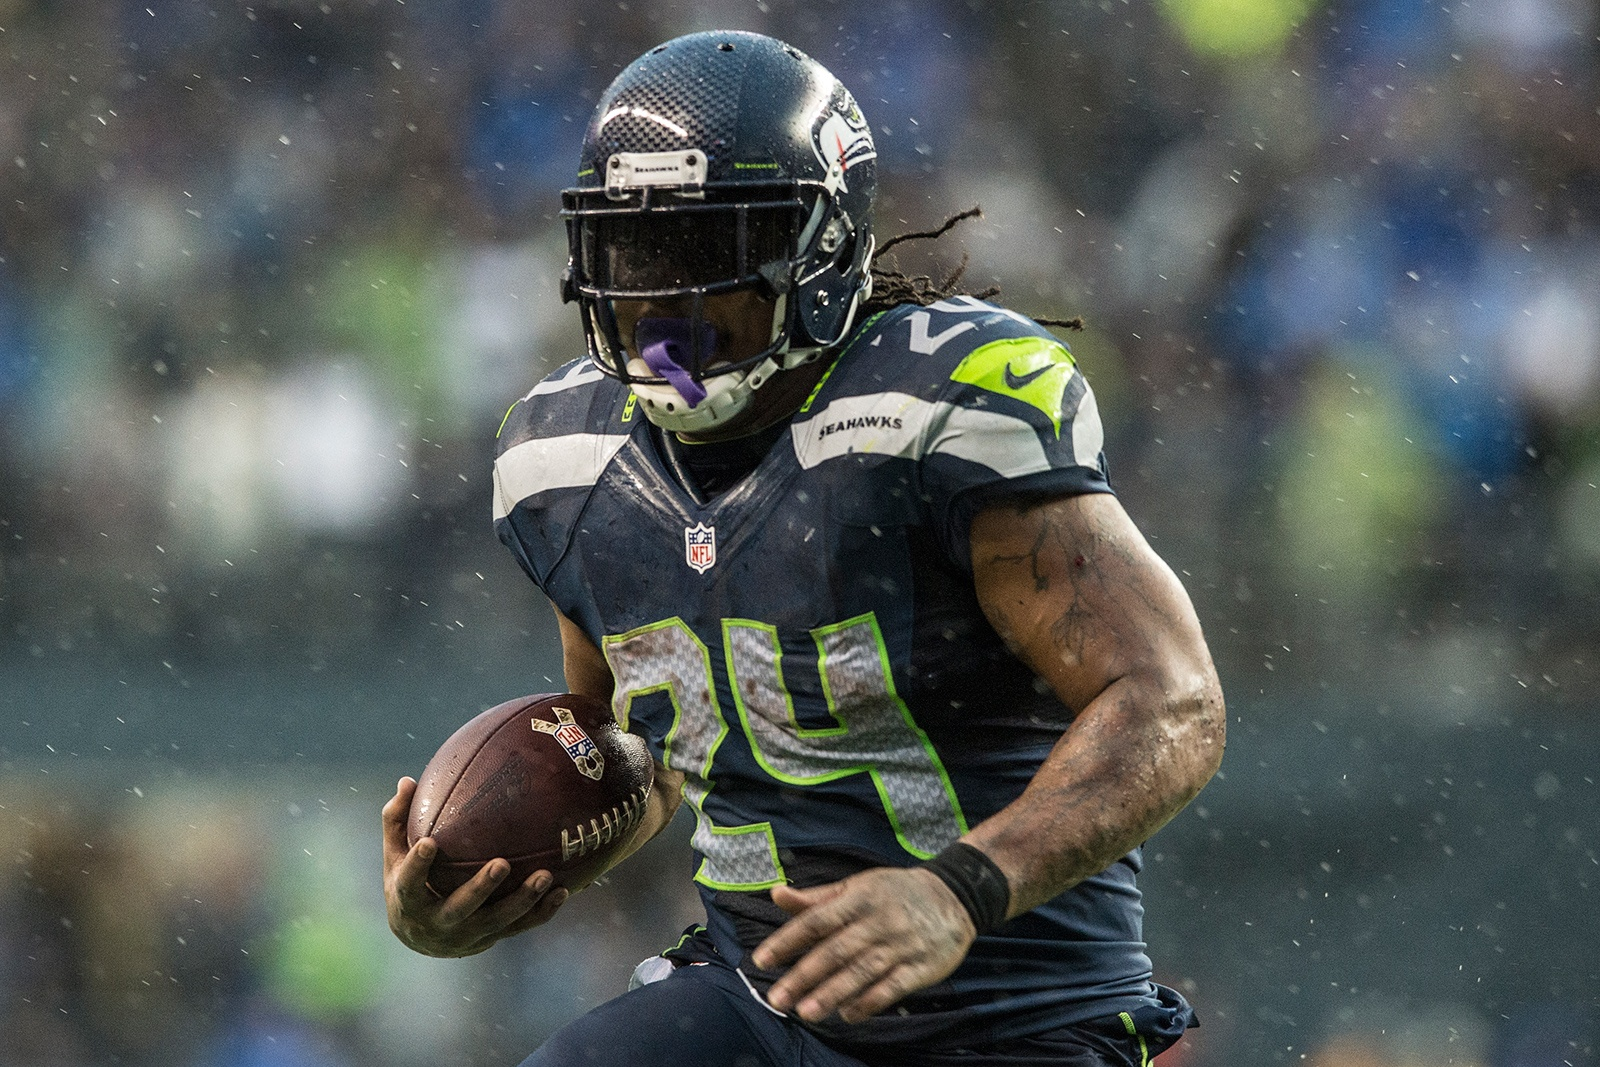 49 Exhilarating Football Photos to Get you Psyched for Super Bowl XLIX